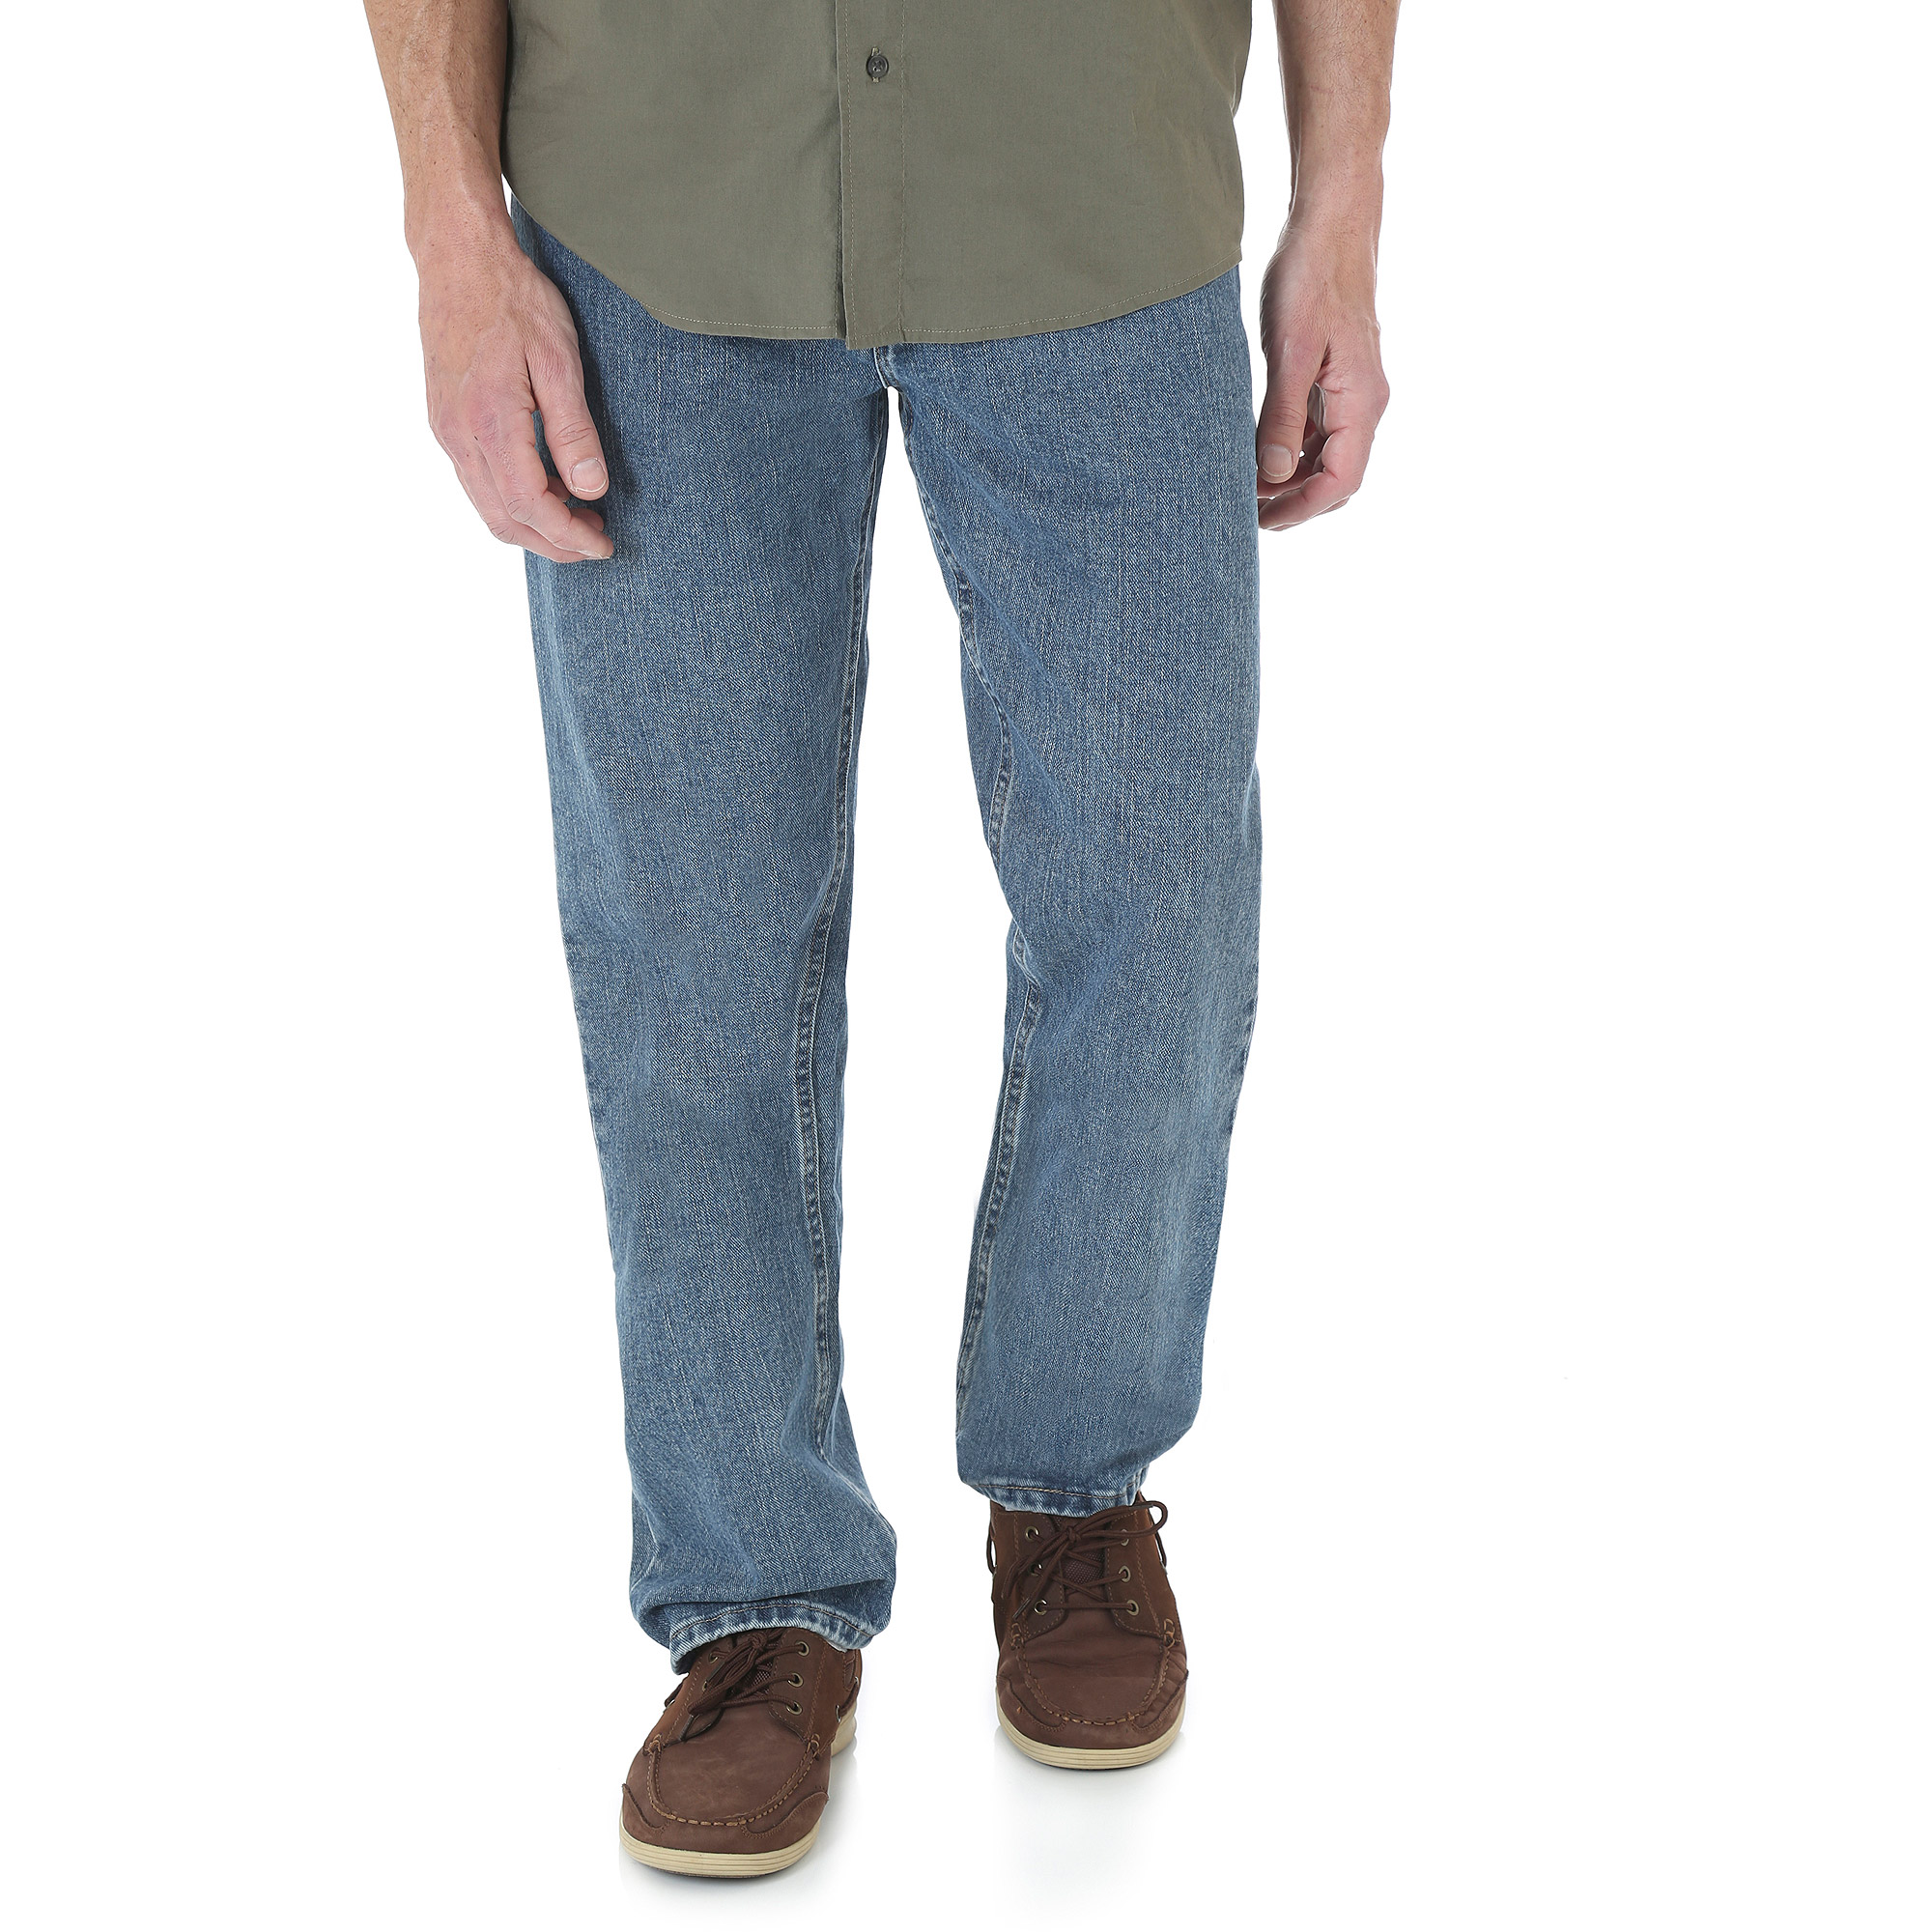 Wrangler - Tall Men's Relaxed Fit Jeans - Walmart.com